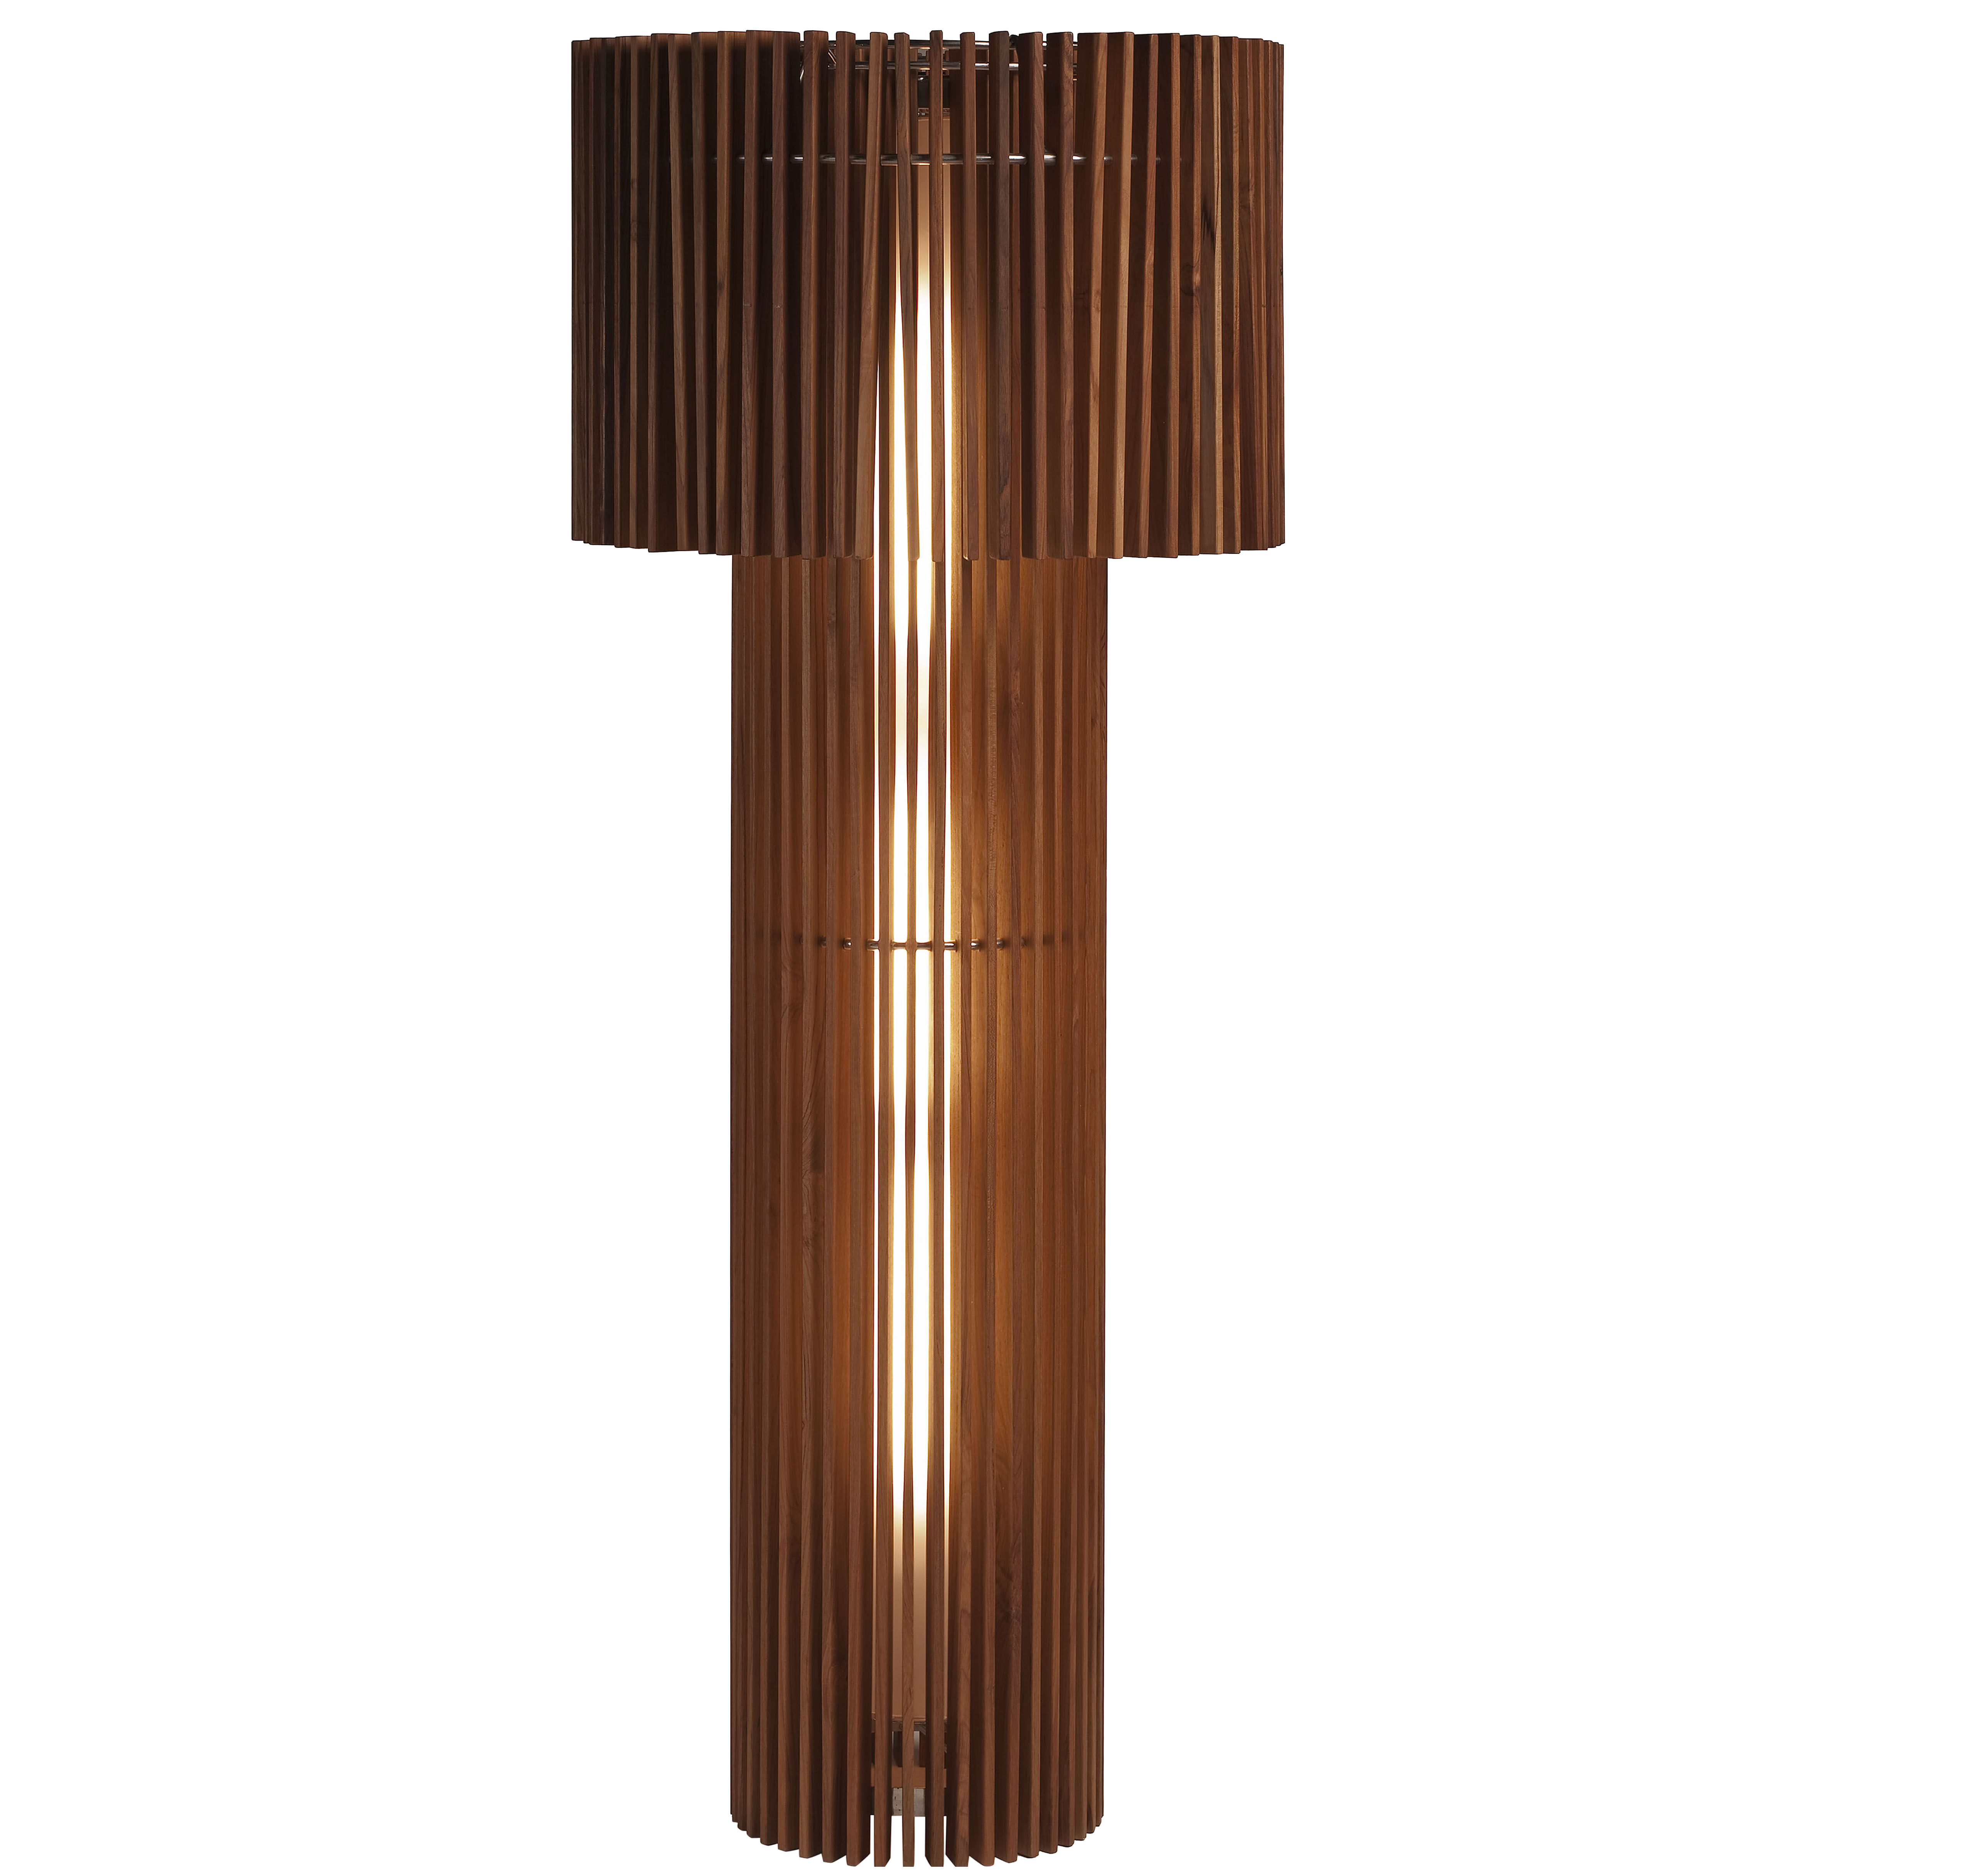 Made in design contemporary furniture home decorating for Harbin wood floor lamp